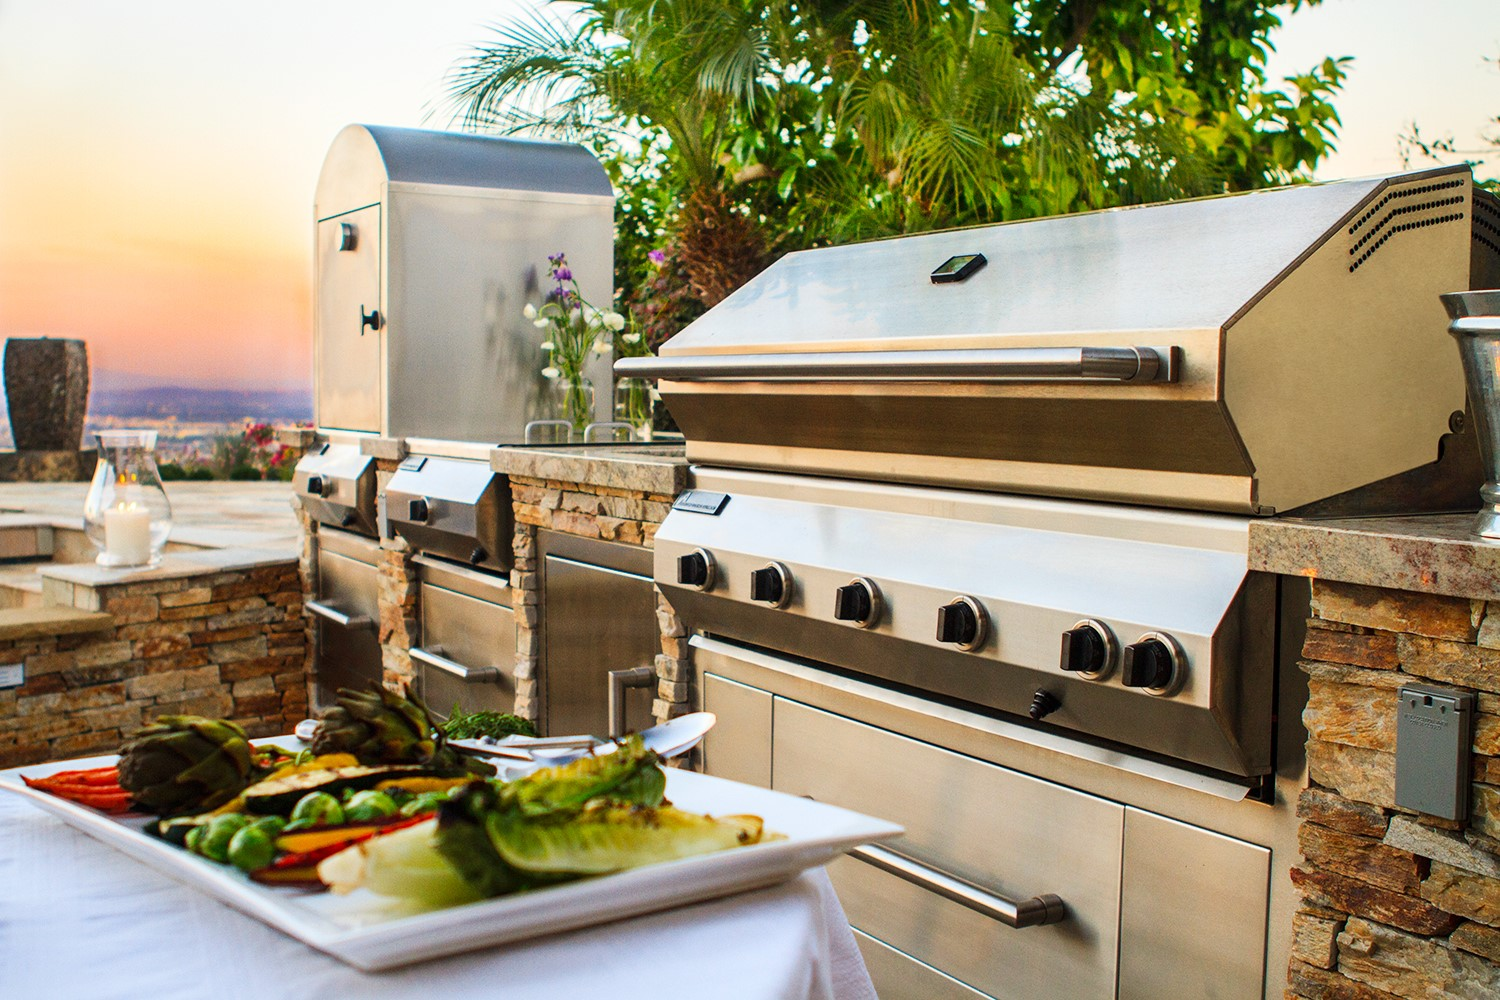 Outdoor kitchens american cooking equipment inc Outdoor kitchen equipment